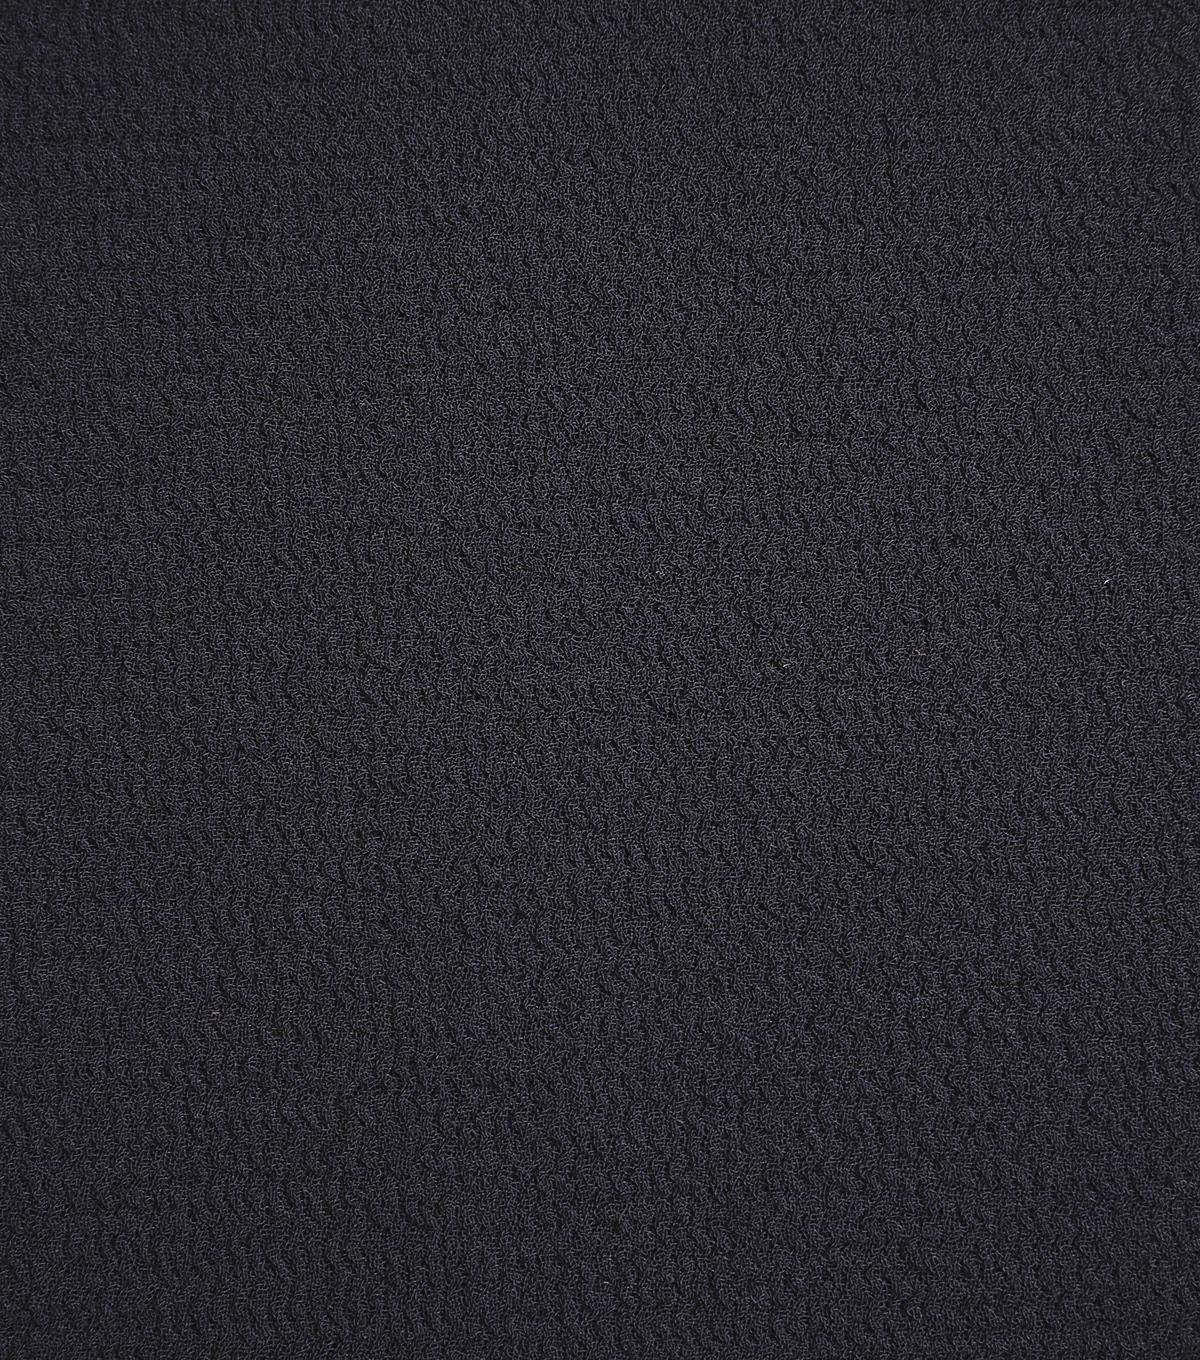 Silky Solid Crepe Knit Fabric-Solid Textured, Black